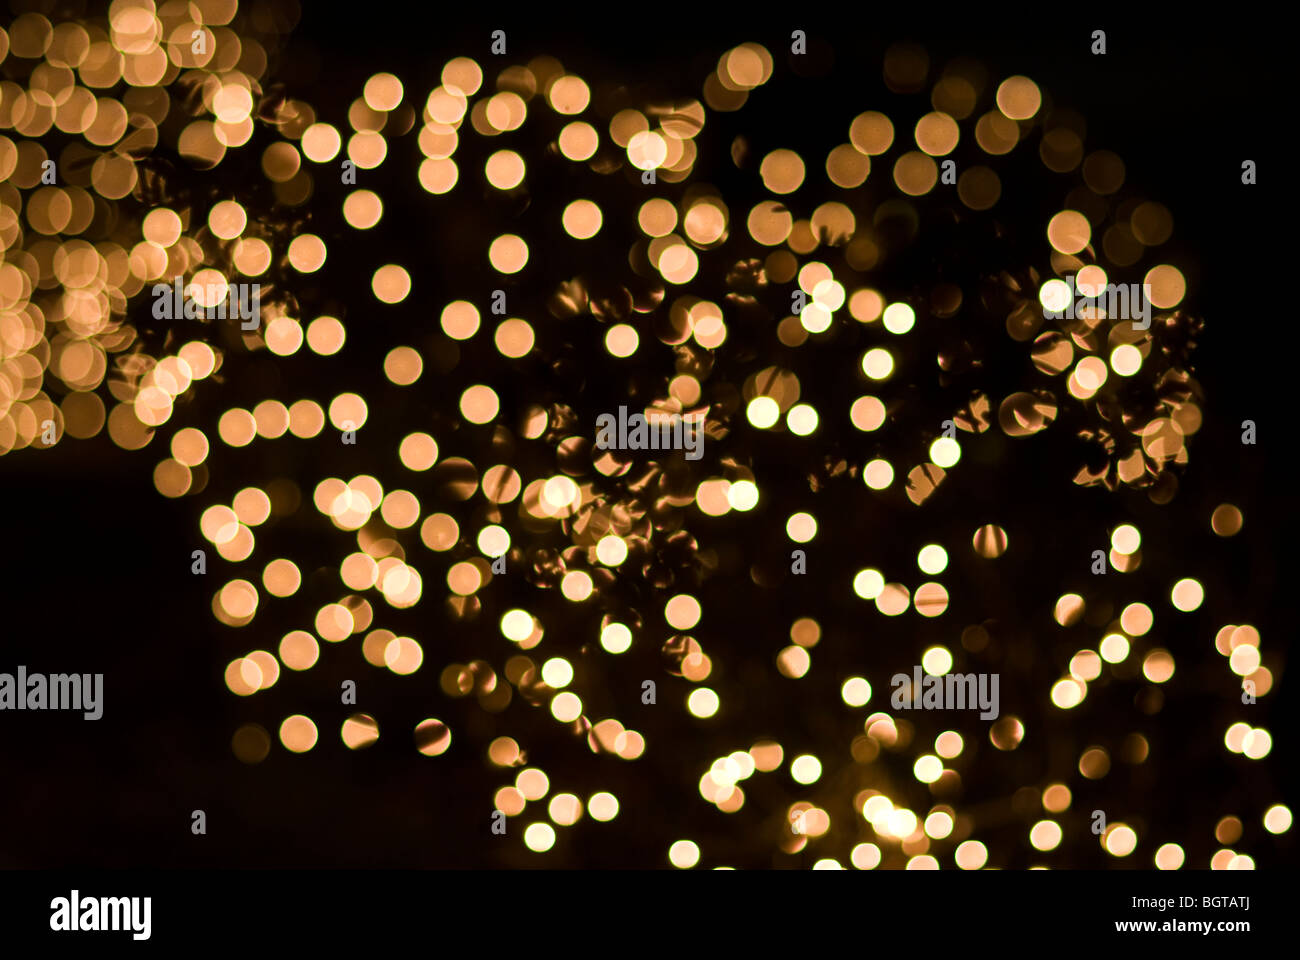 holiaday lights Effects Sparkling  Backgrounds - Stock Image